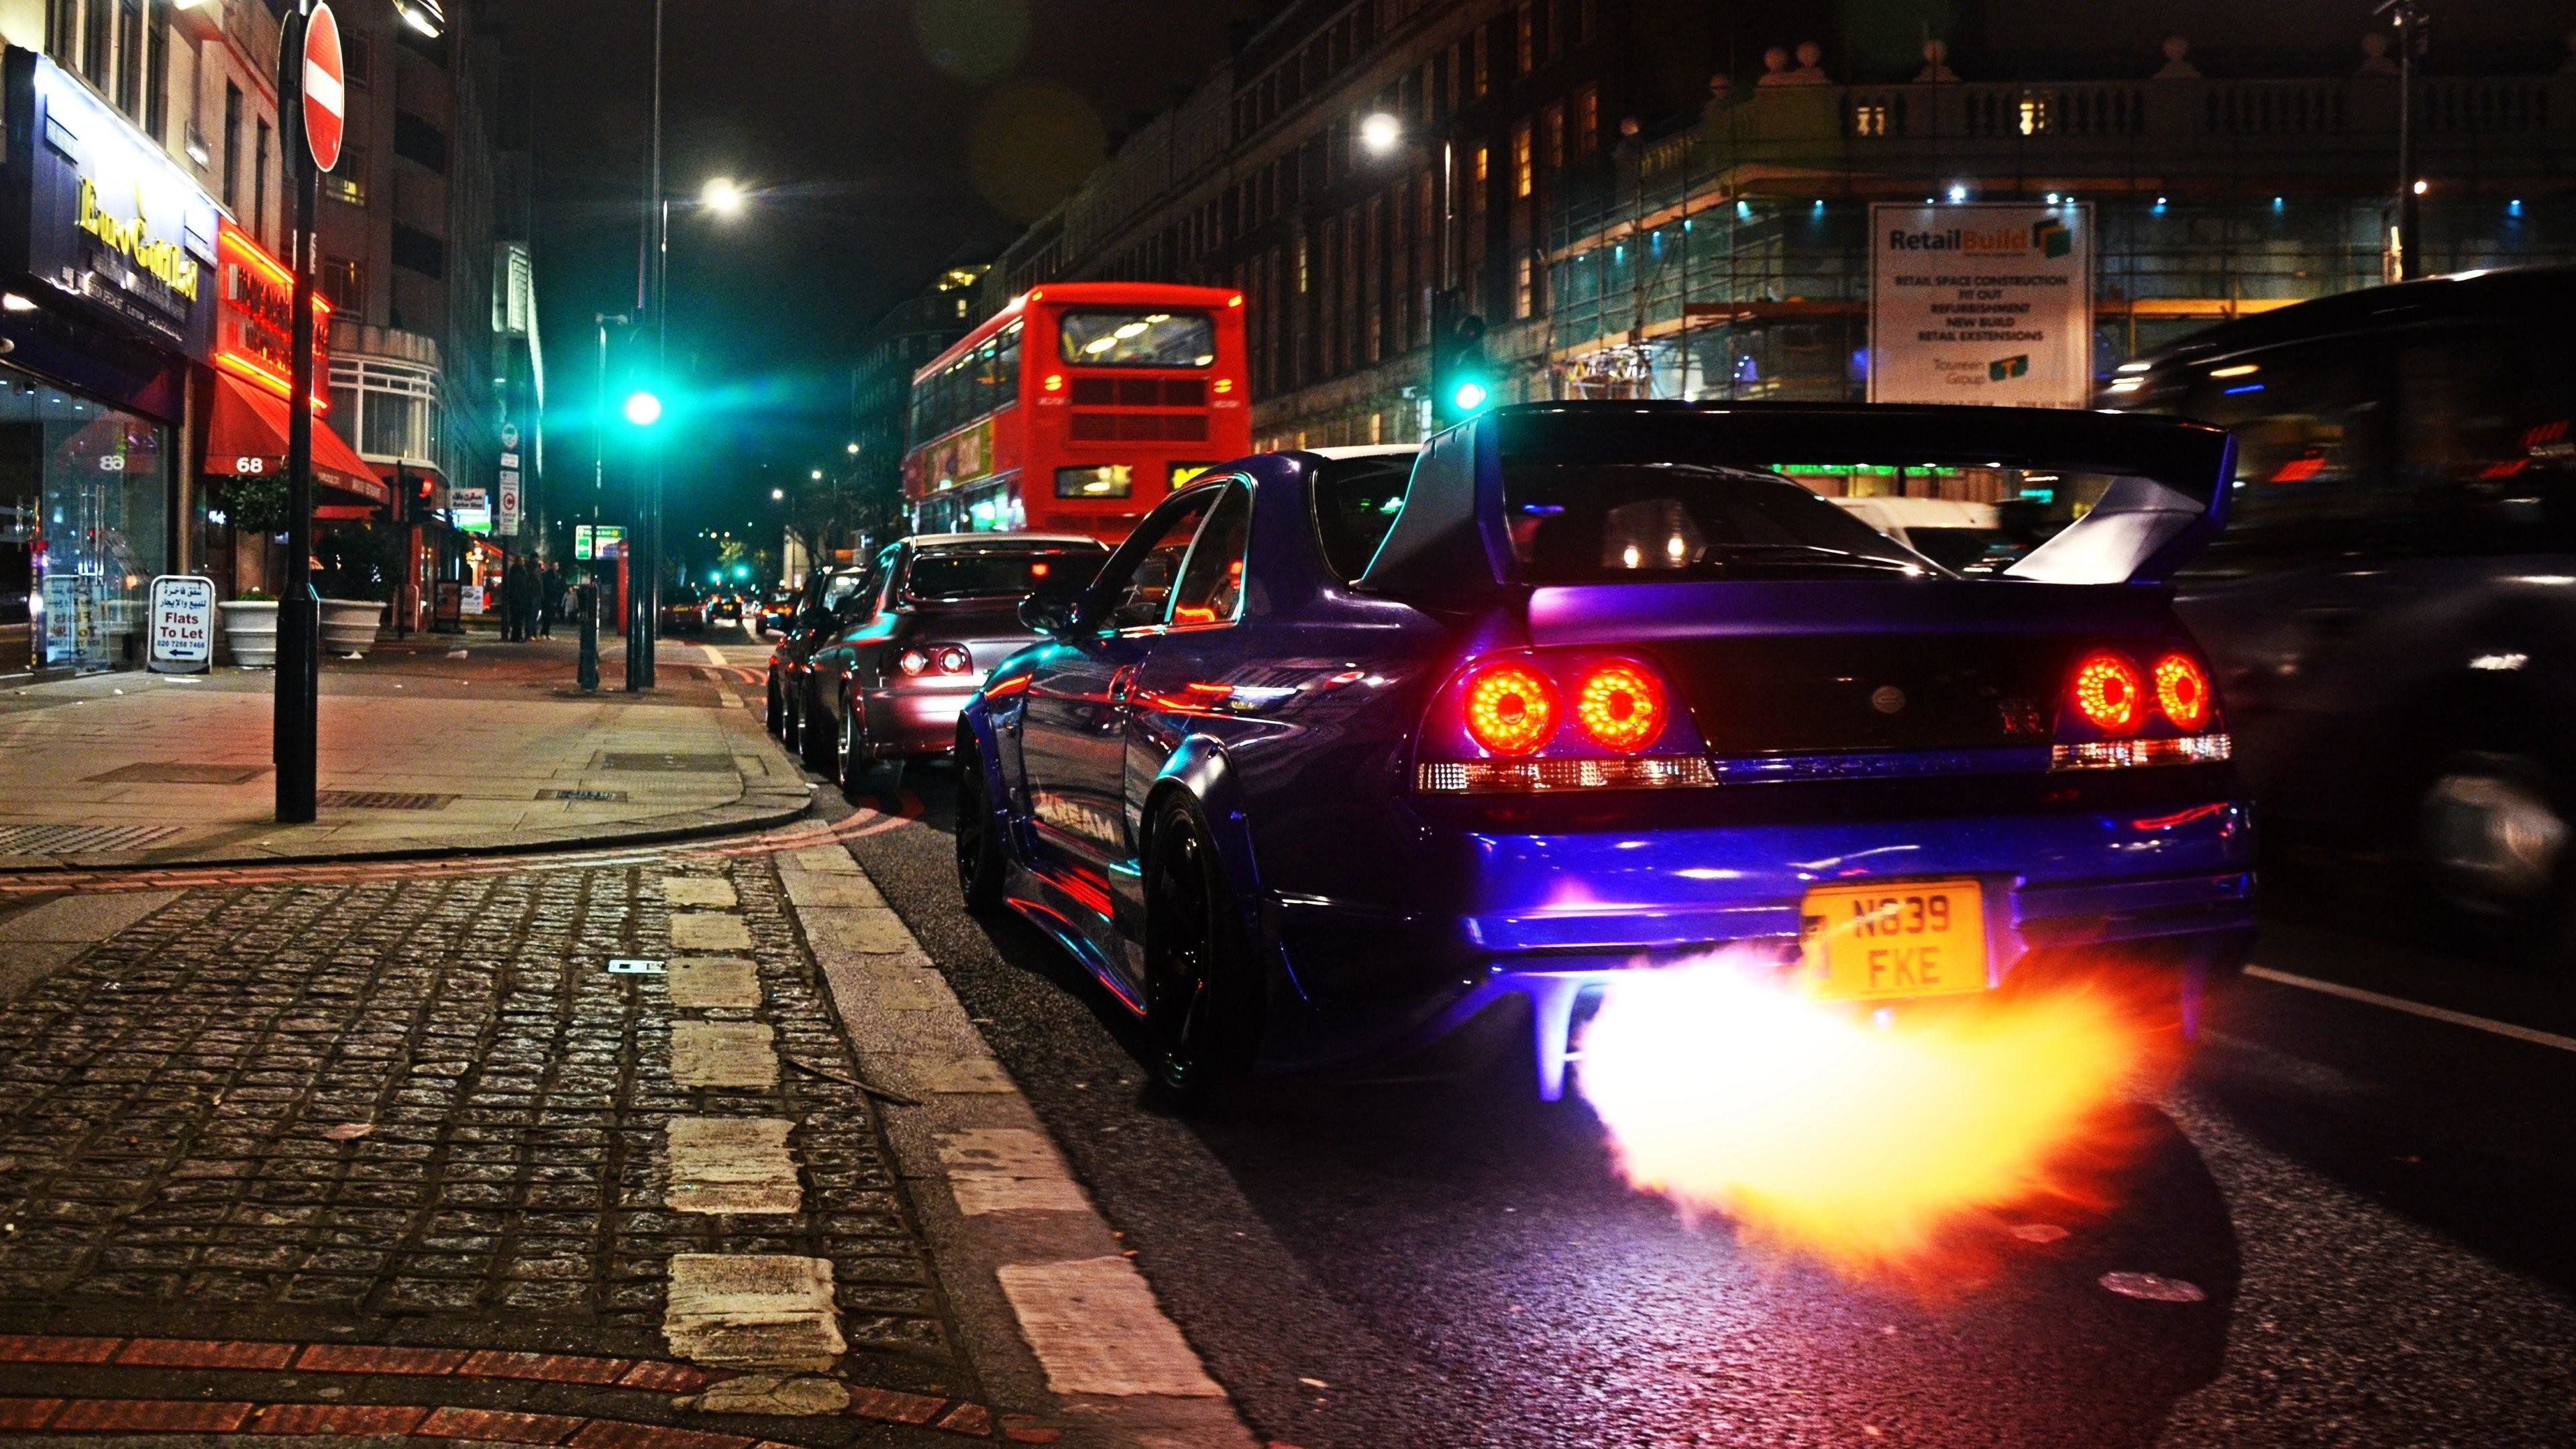 Res: 3840x2160, Nissan Skyline GTR R33 In London Wallpaper | Wallpaper Studio 10 | Tens of  thousands HD and UltraHD wallpapers for Android, Windows and Xbox